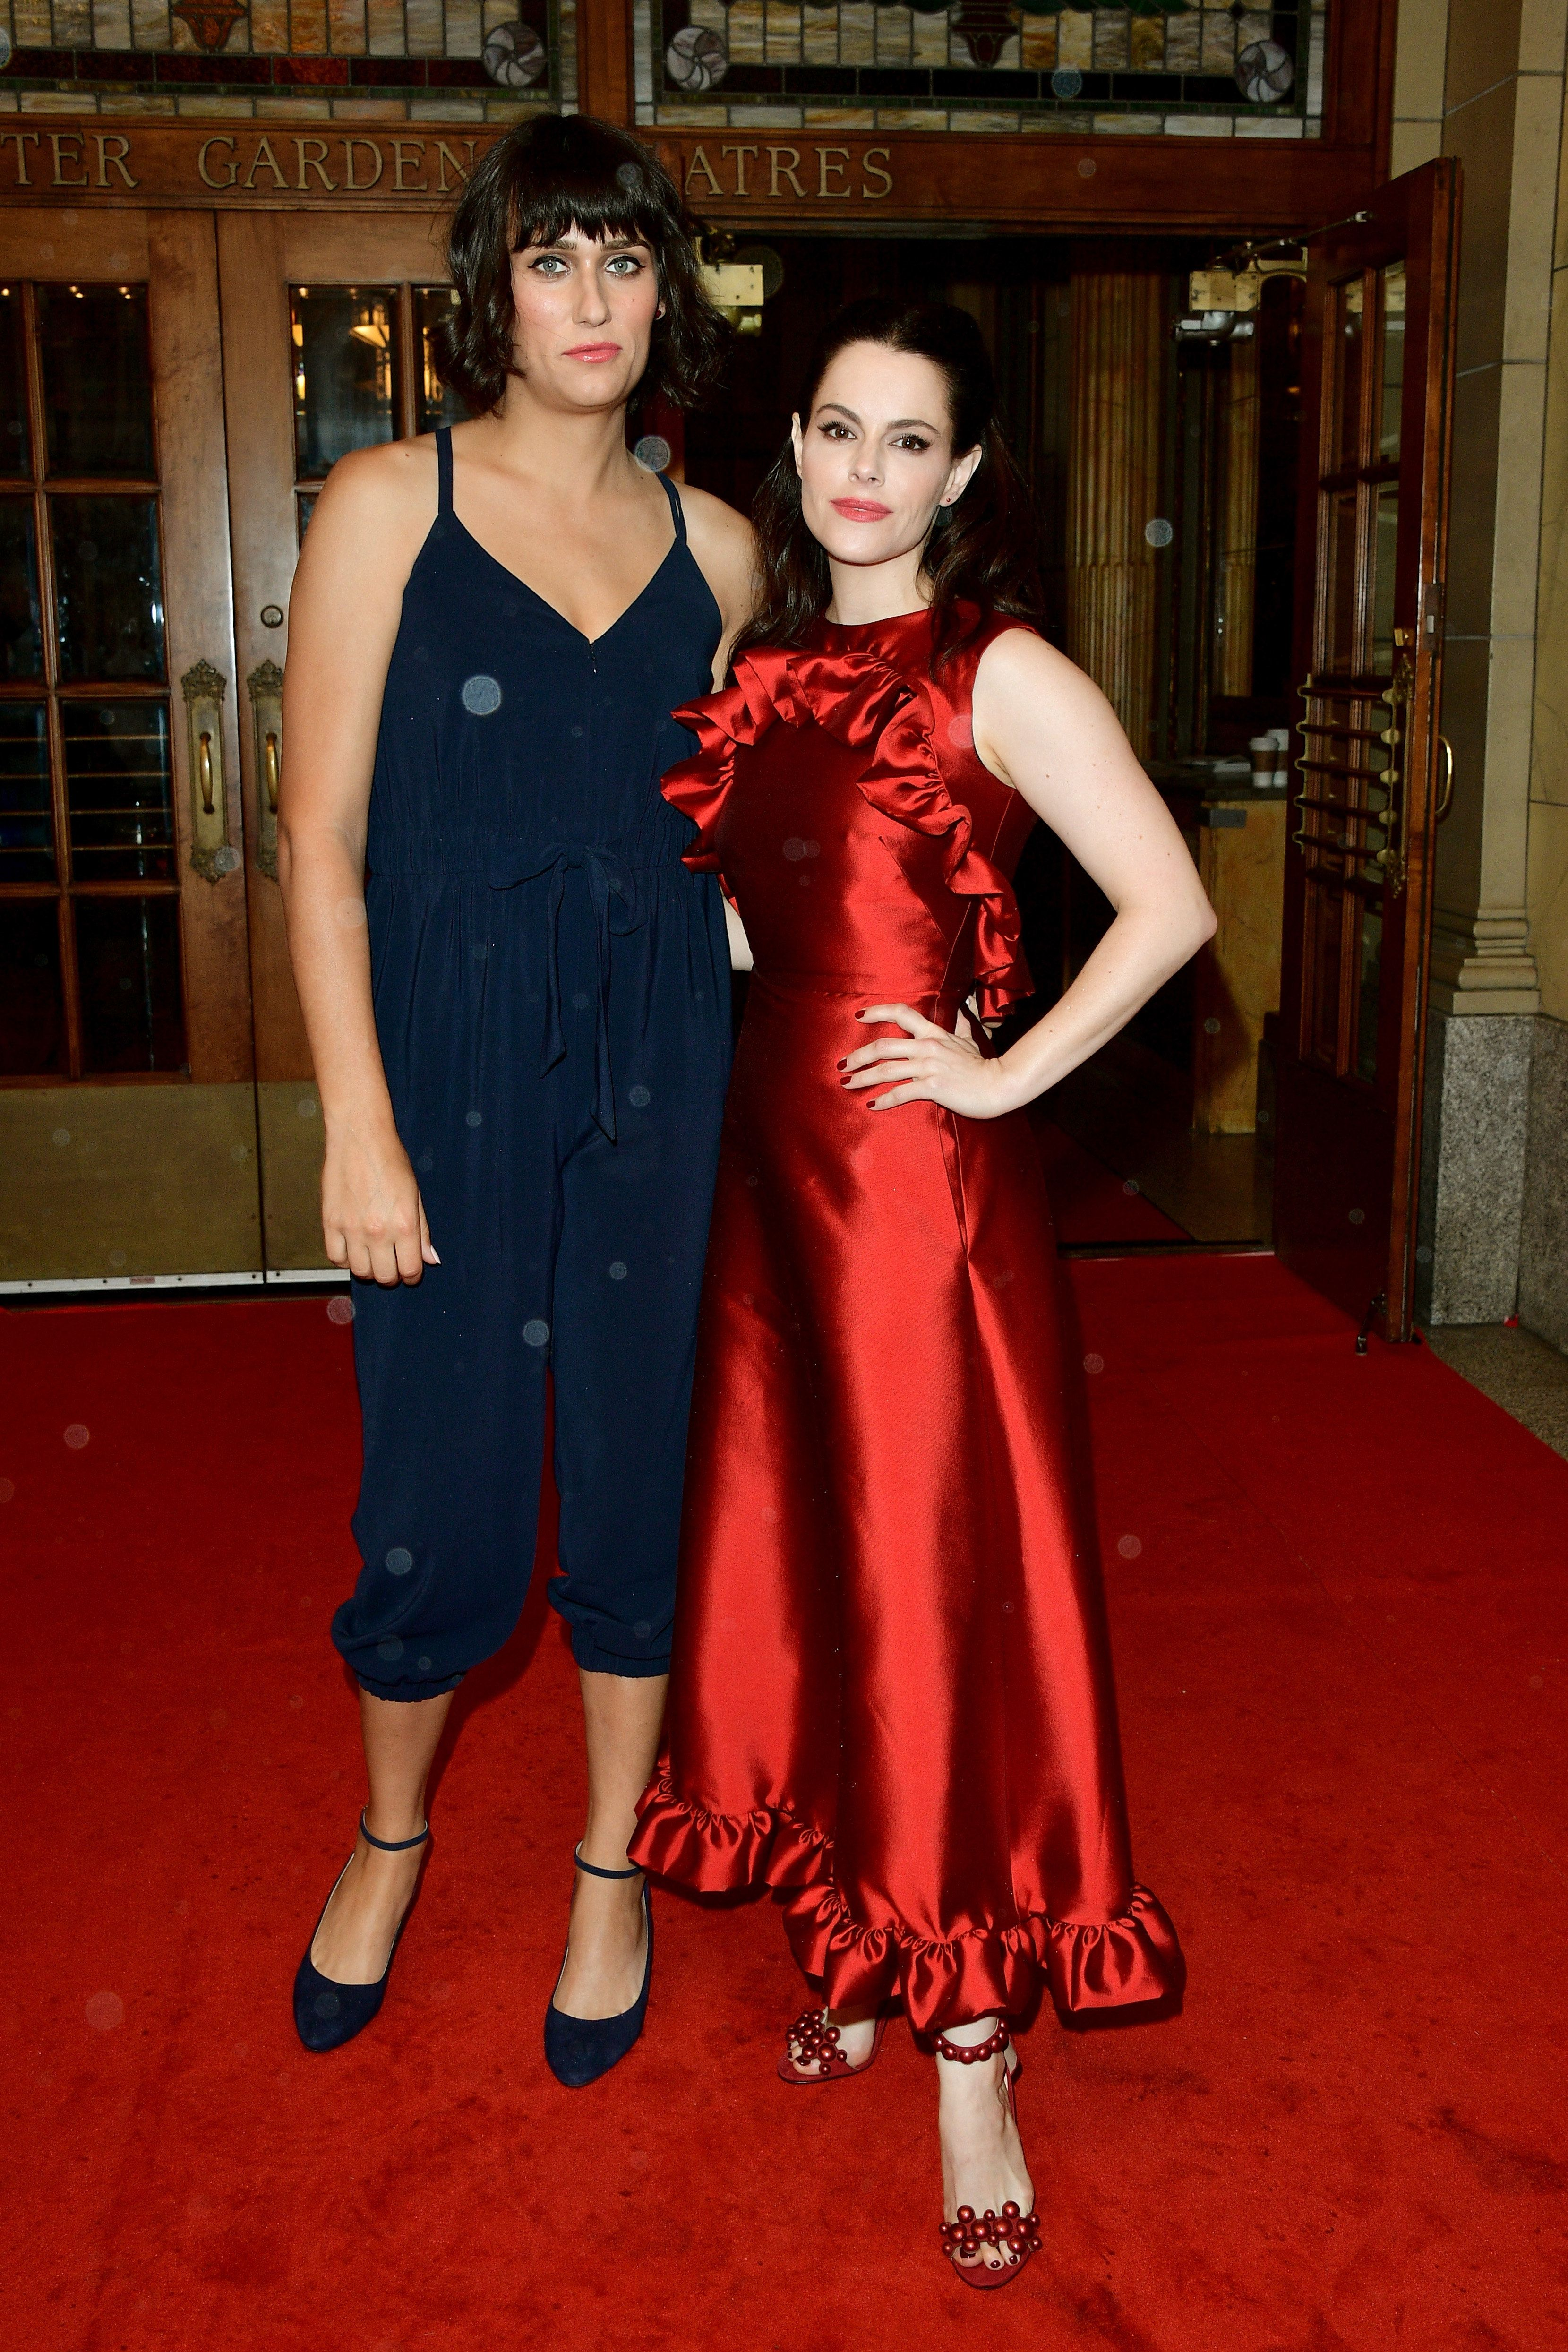 TORONTO, ON - SEPTEMBER 10:  Teddy Geiger (L) and Emily Hampshire attend the 'The Death And Life Of John F. Donovan' premiere during 2018 Toronto International Film Festival at Winter Garden Theatre on September 10, 2018 in Toronto, Canada.  (Photo by George Pimentel/Getty Images)